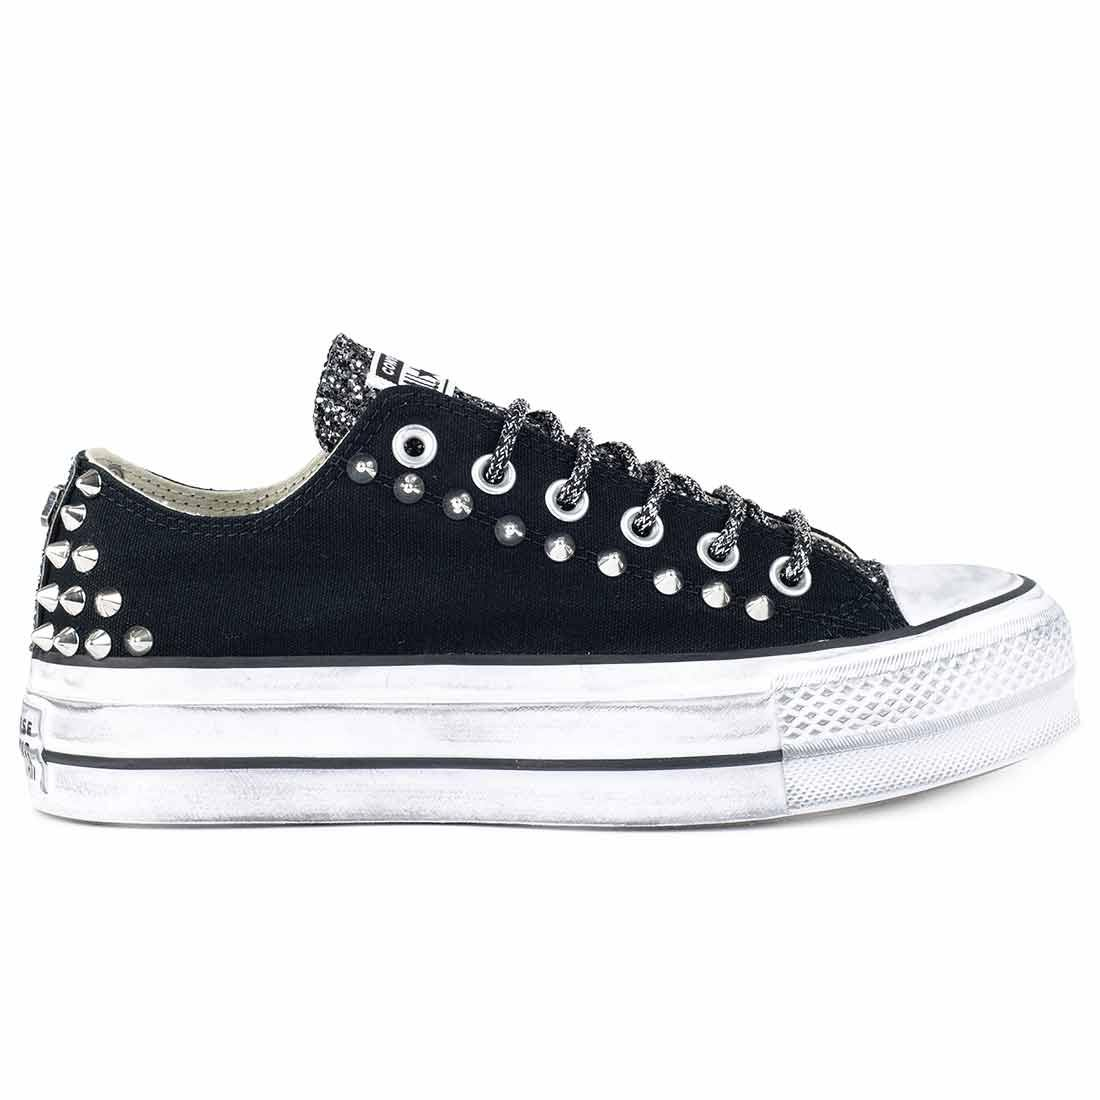 all star basse con borchie a cono e glitter nero